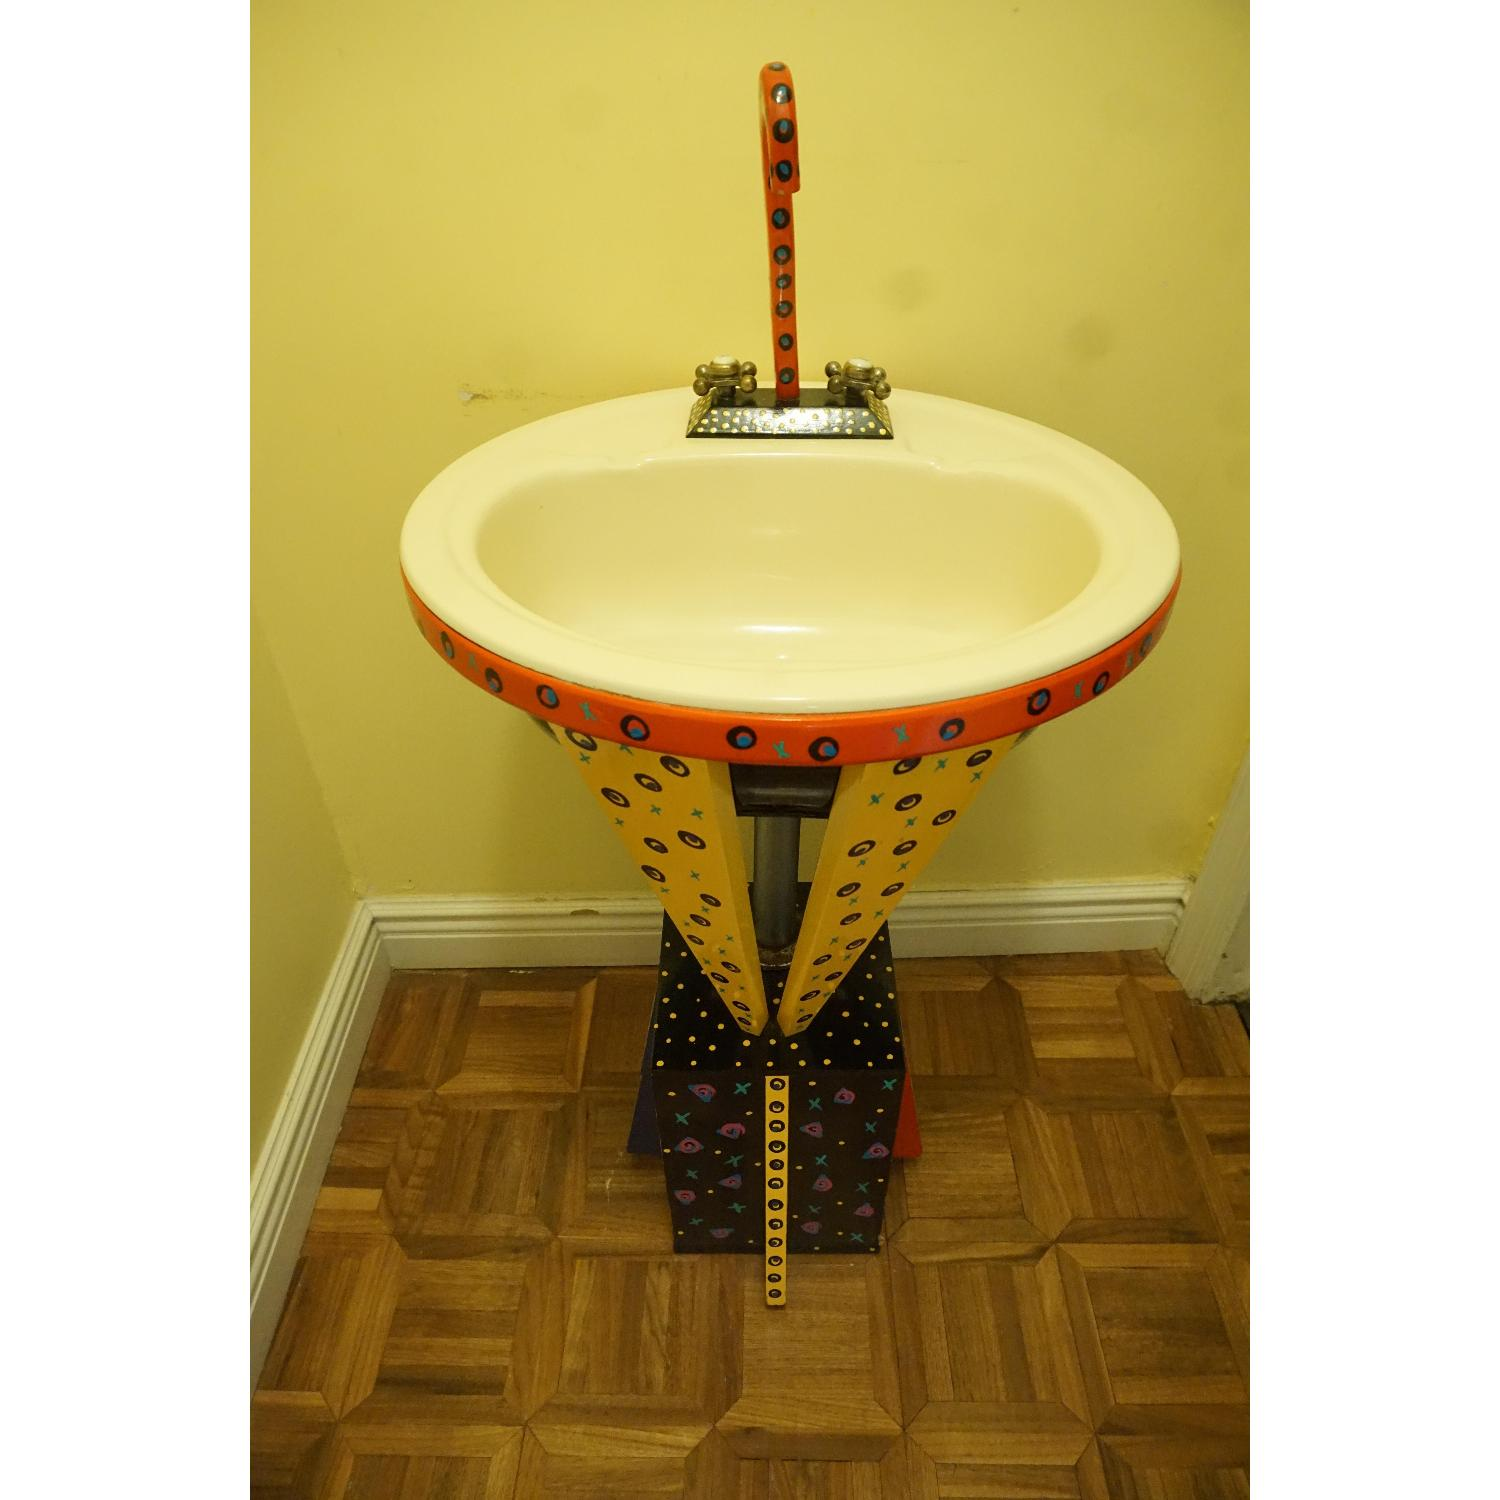 Found Art - Handmade Artist Signed Colorful Painted Sink - image-6